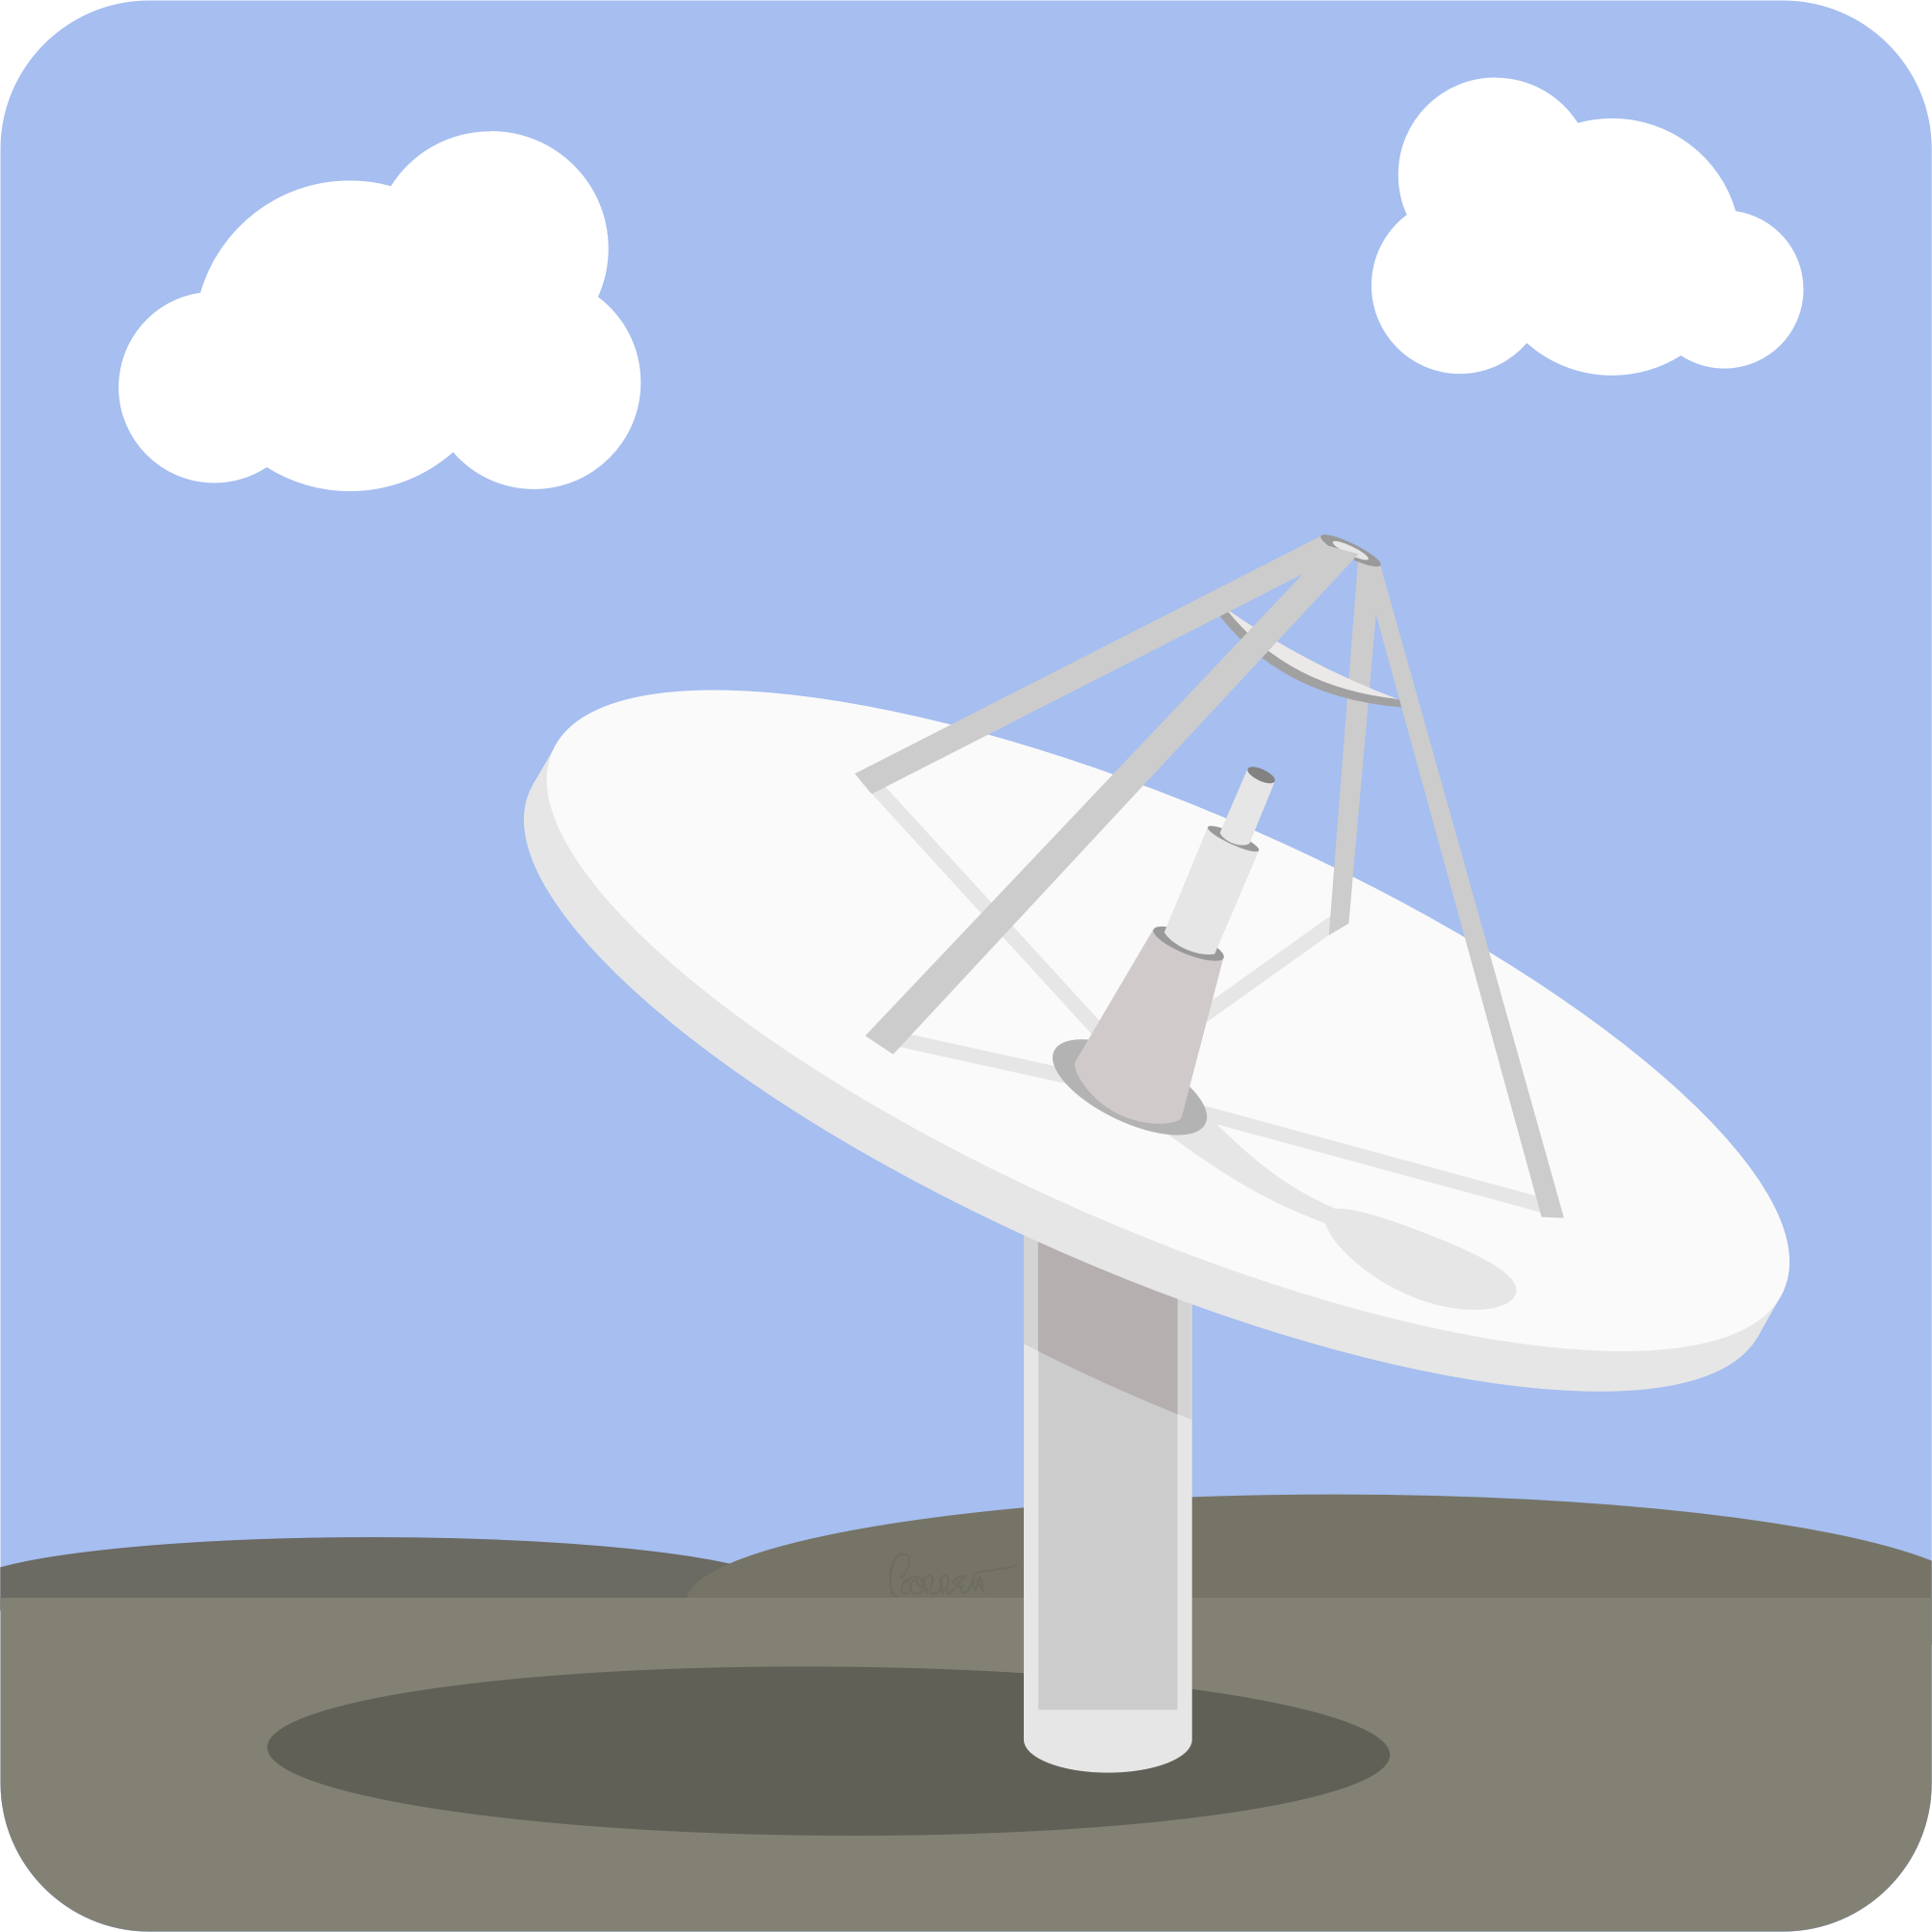 Satellite Dish Base Station by barrettward